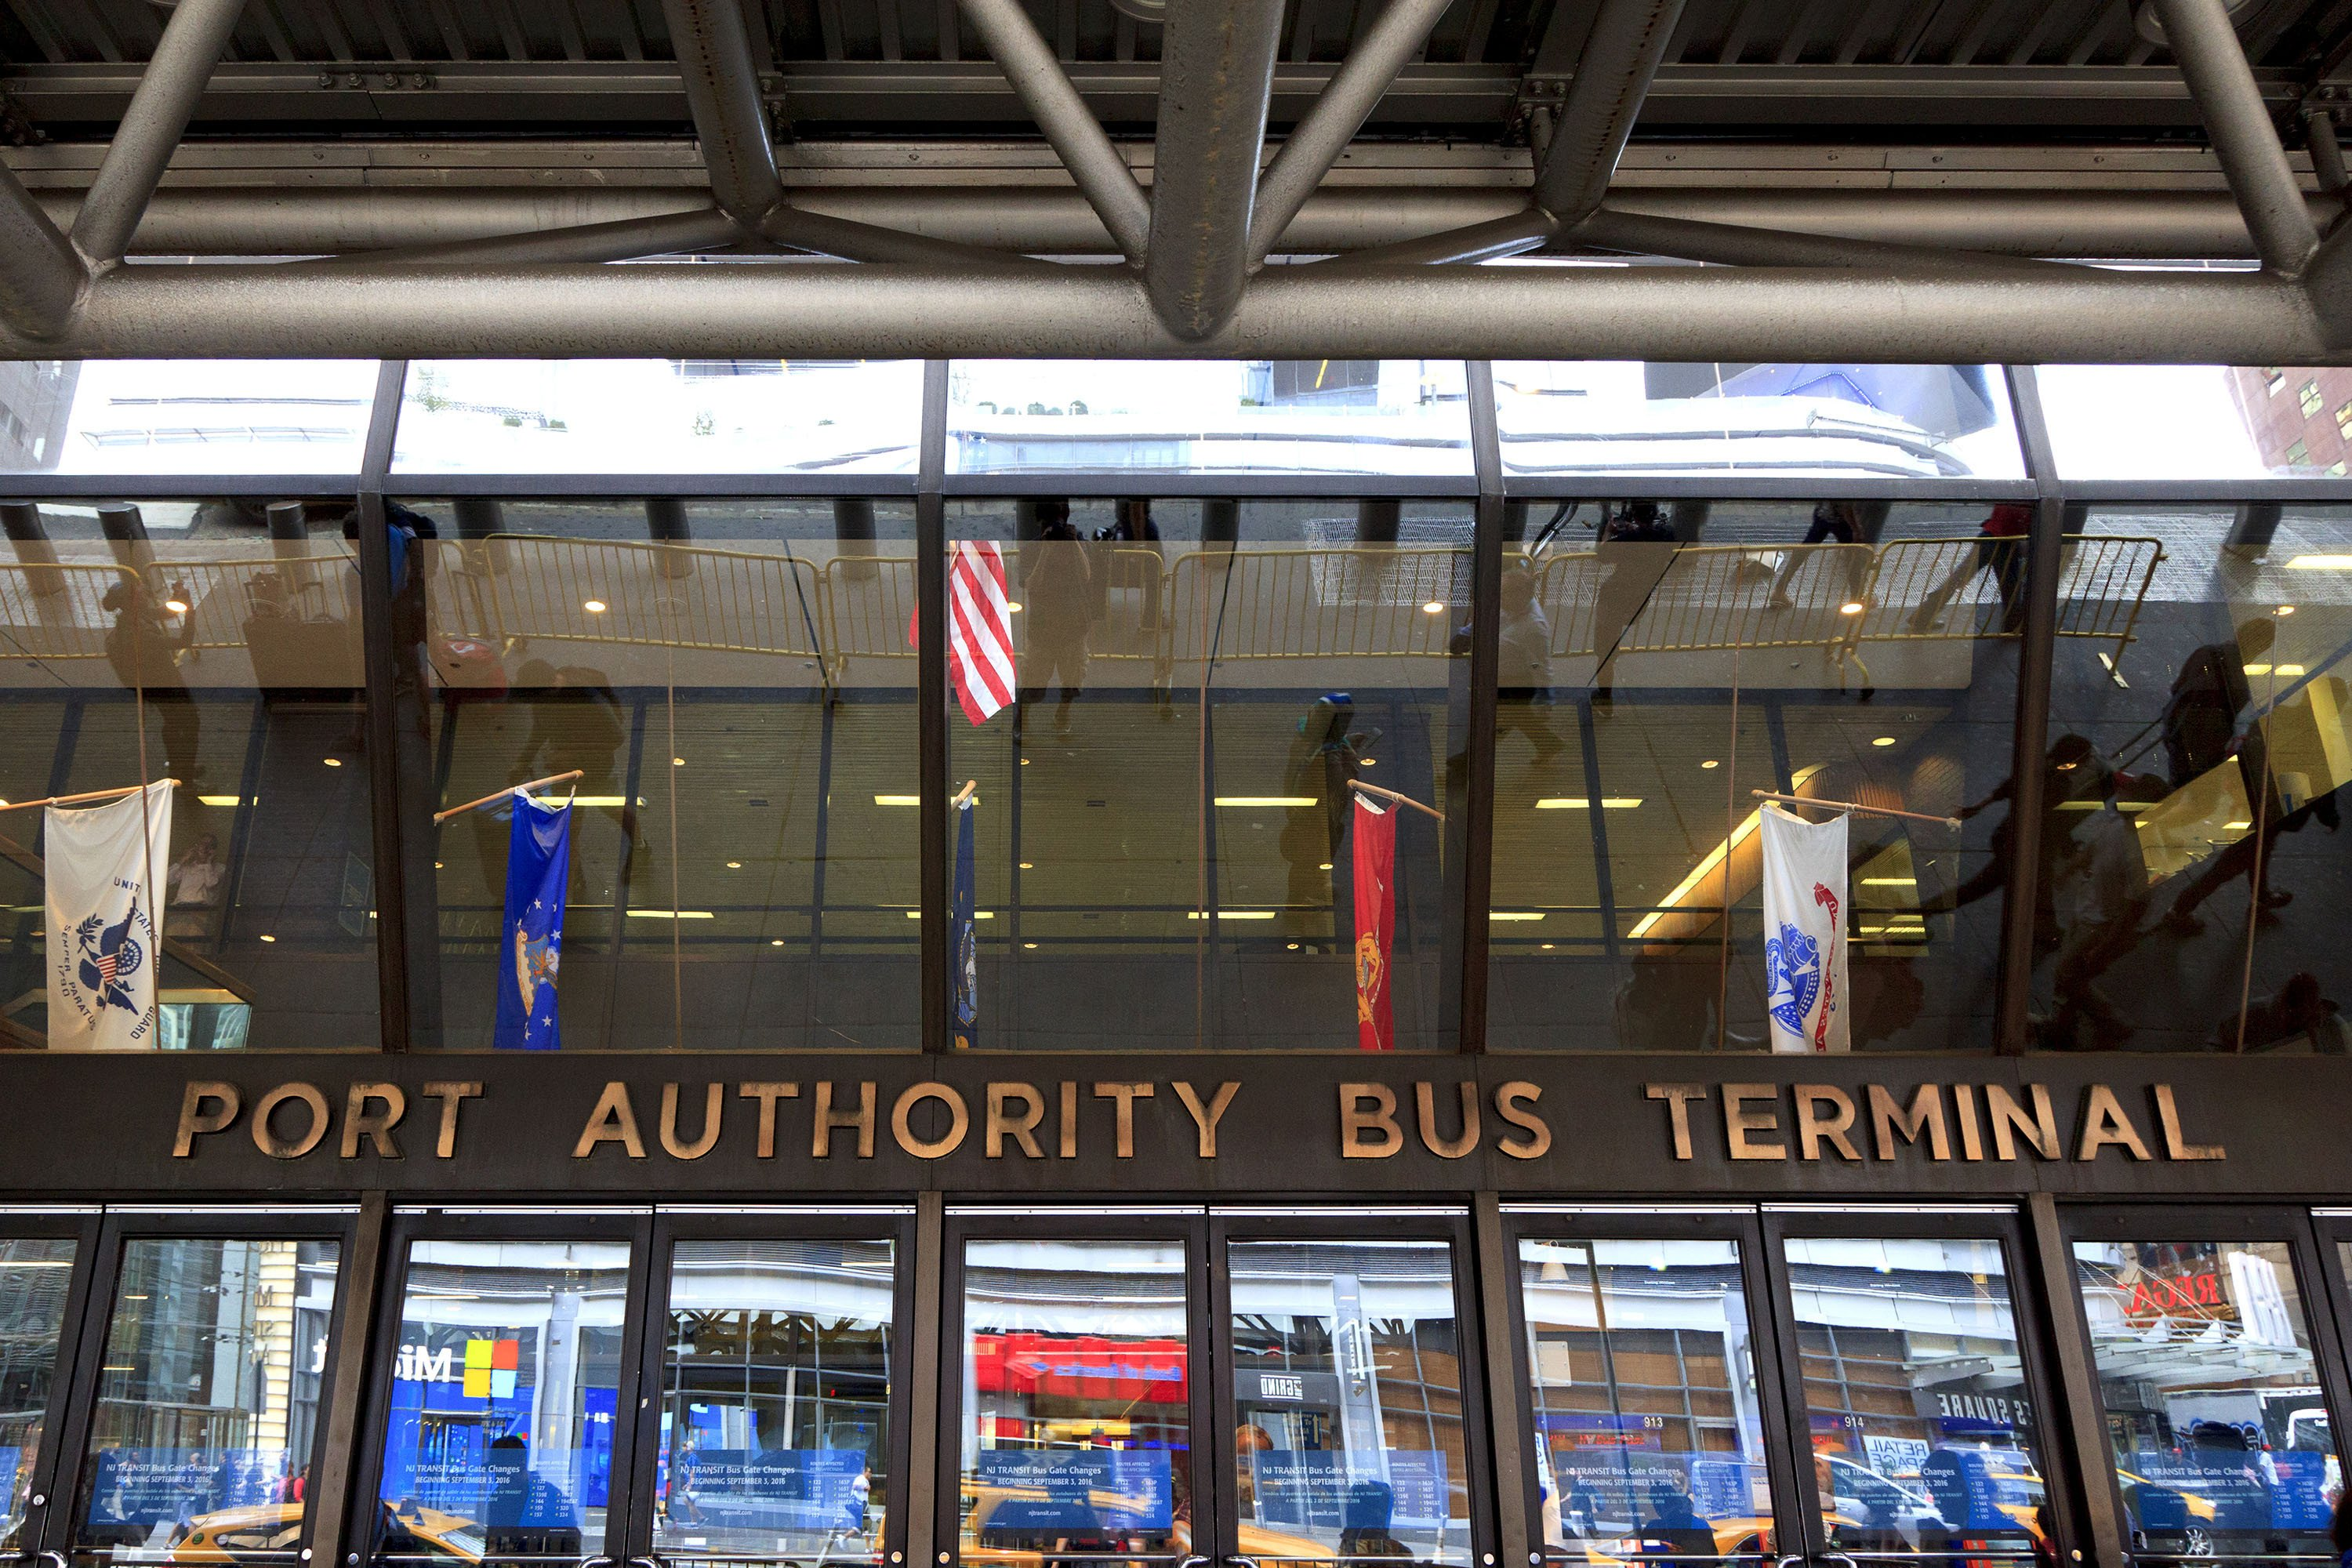 Worker claims Port Authority secretly records medical exams